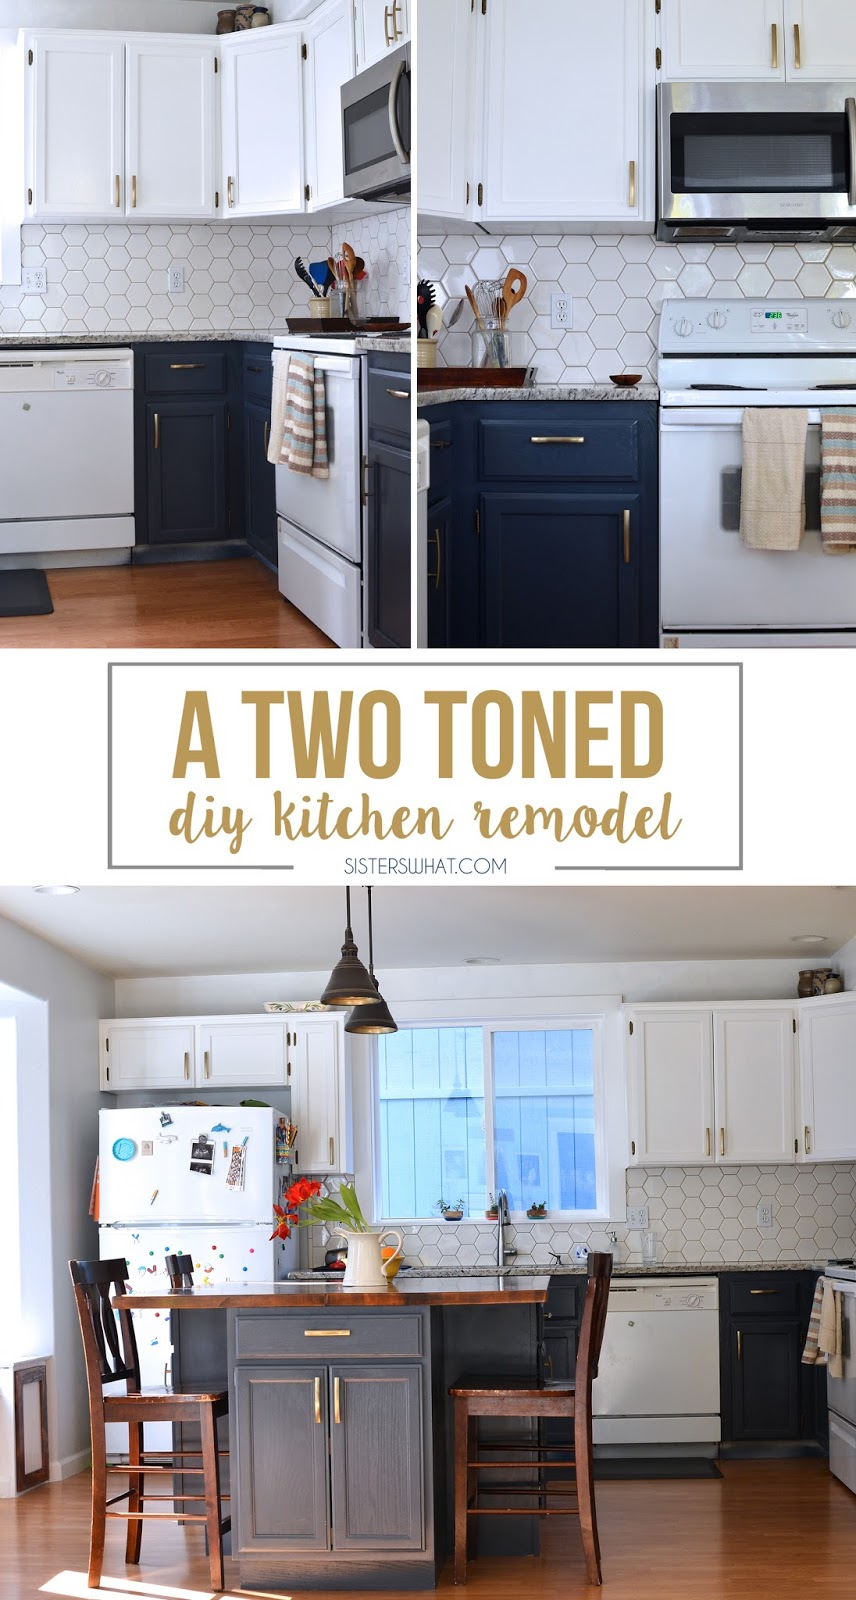 a two toned diy kitchen remodel